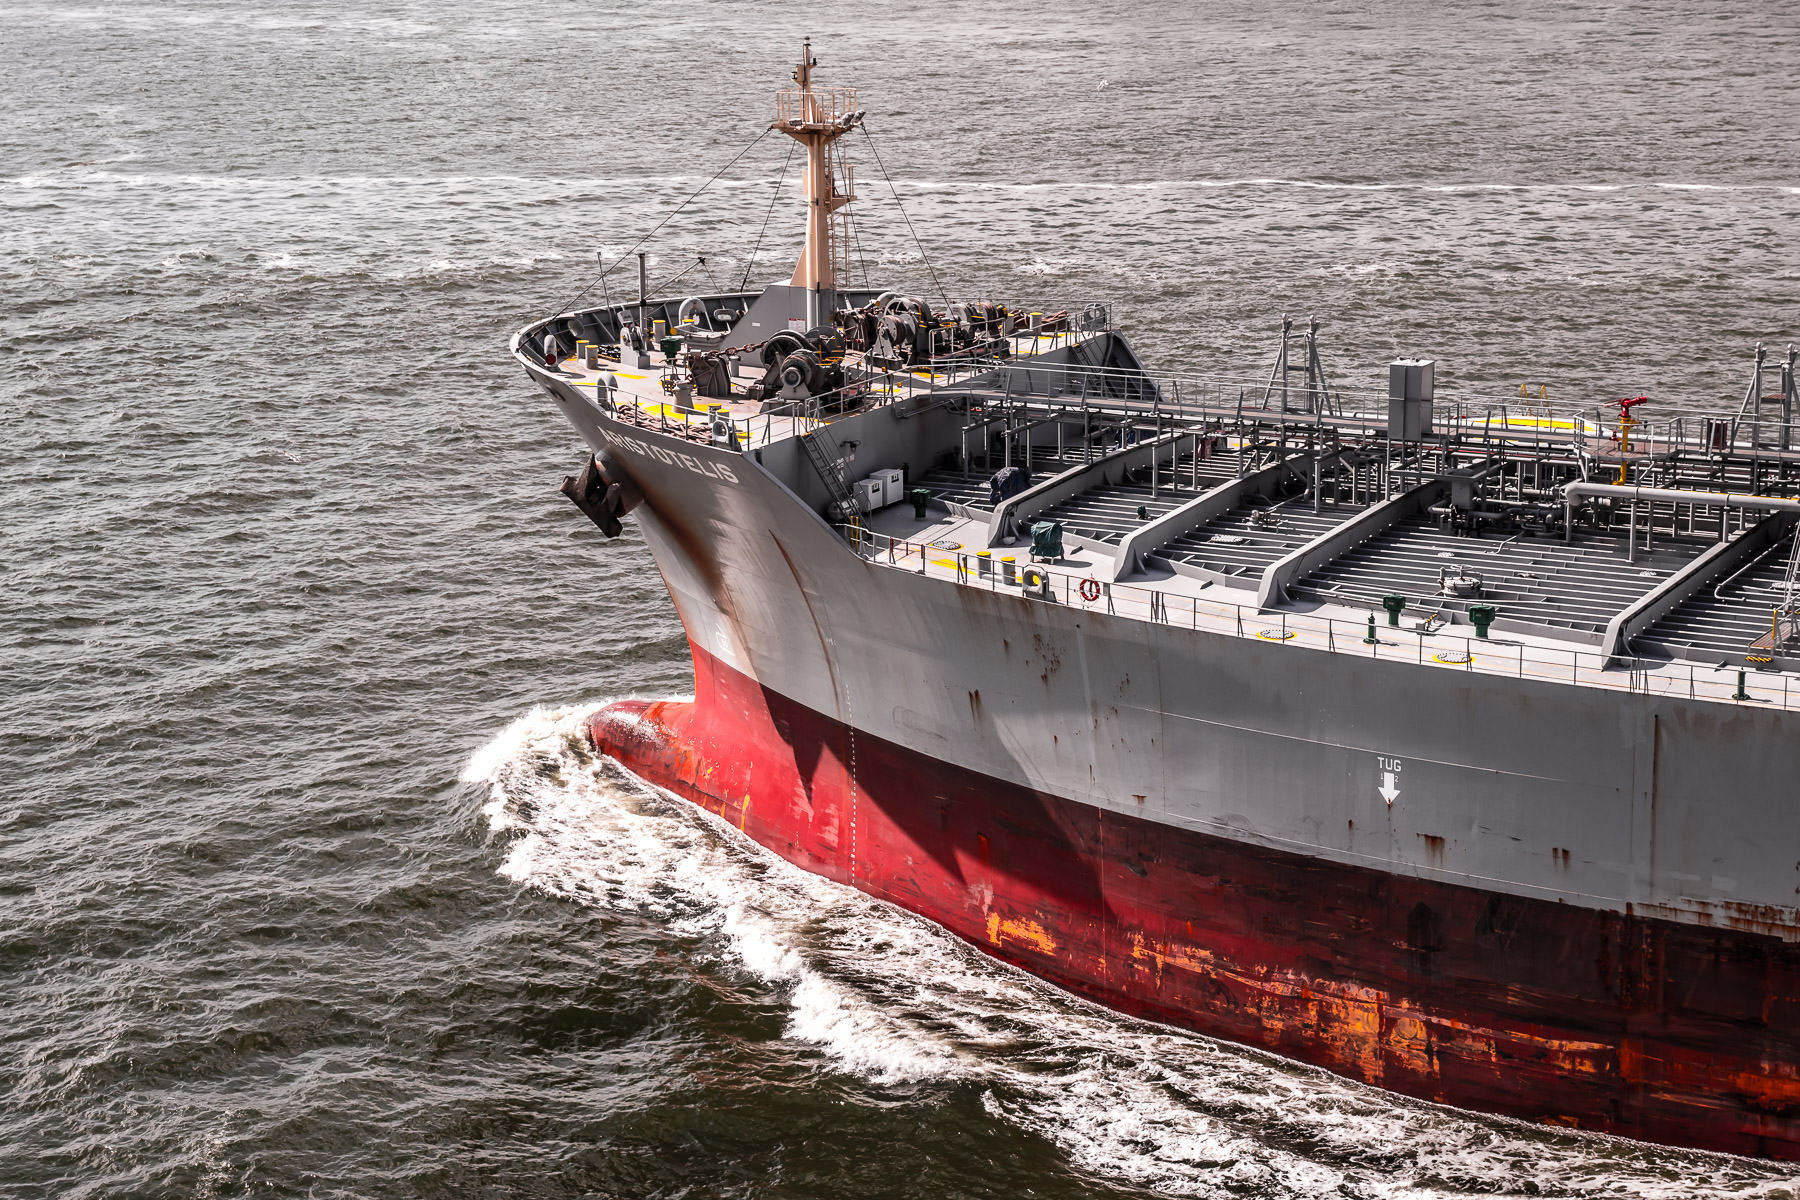 The bow of the chemical carrier Aristotelis cuts through the ocean at Bolivar Roads just off the coast of Galveston, Texas.